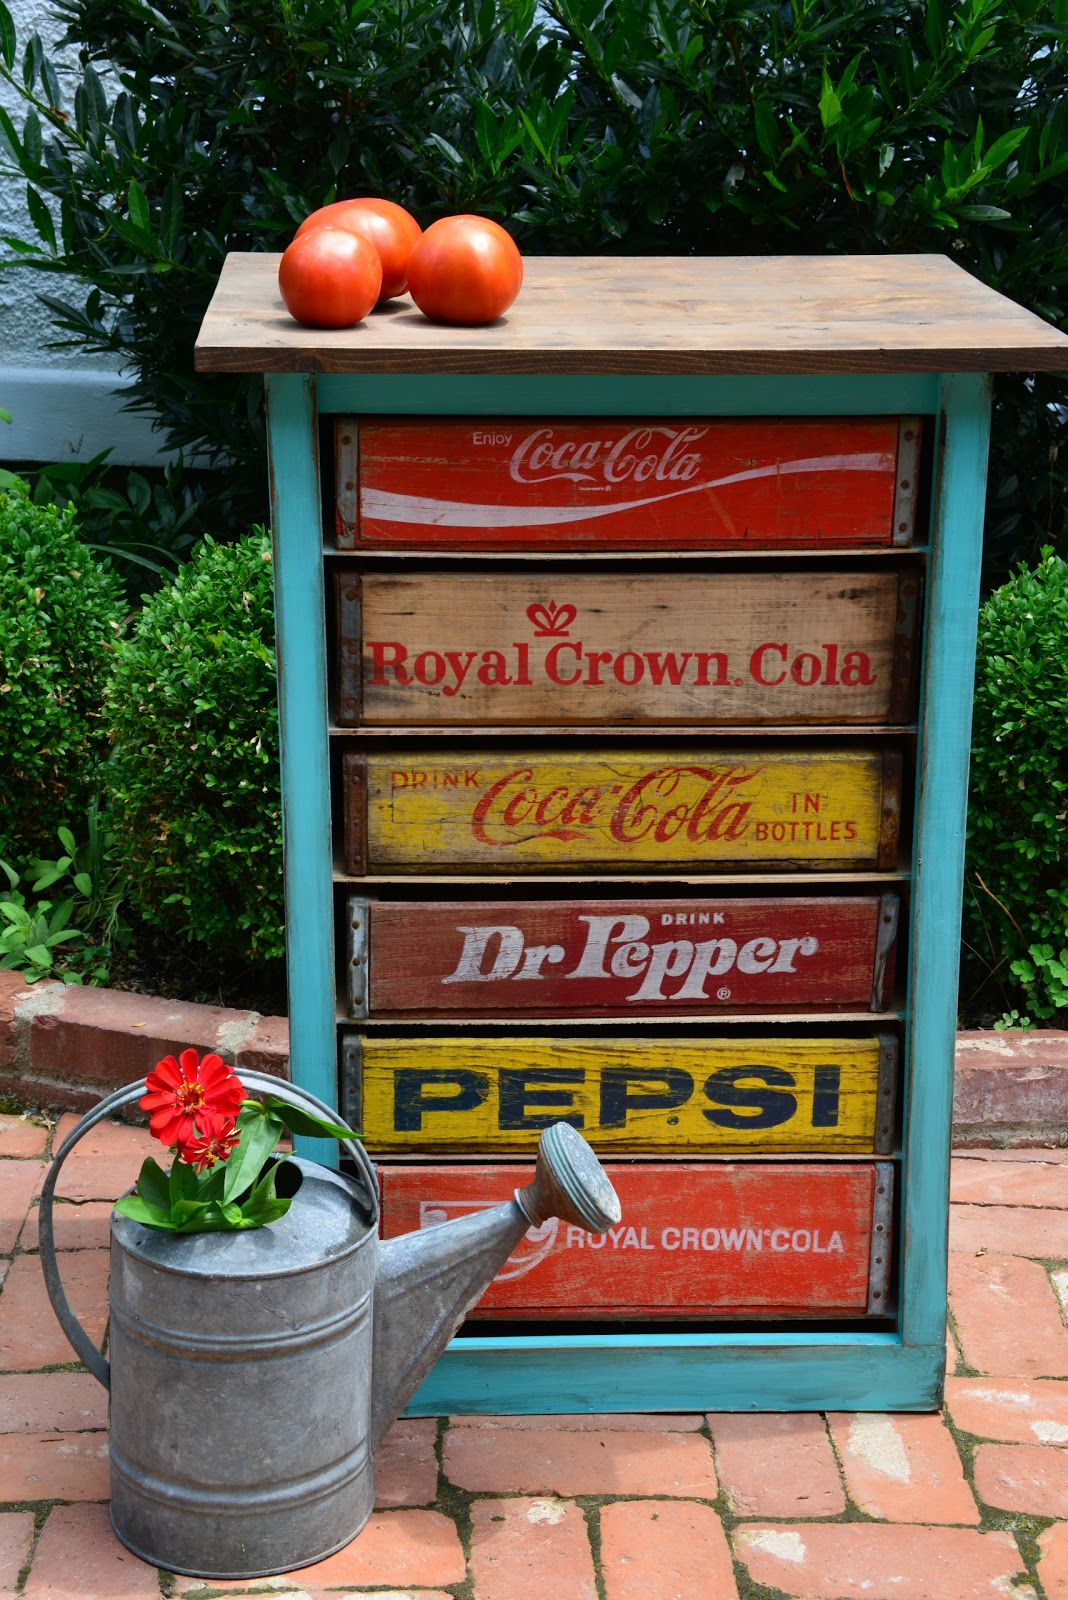 Soda crate cabinent cabin ideas pinterest for Wooden soda crate ideas